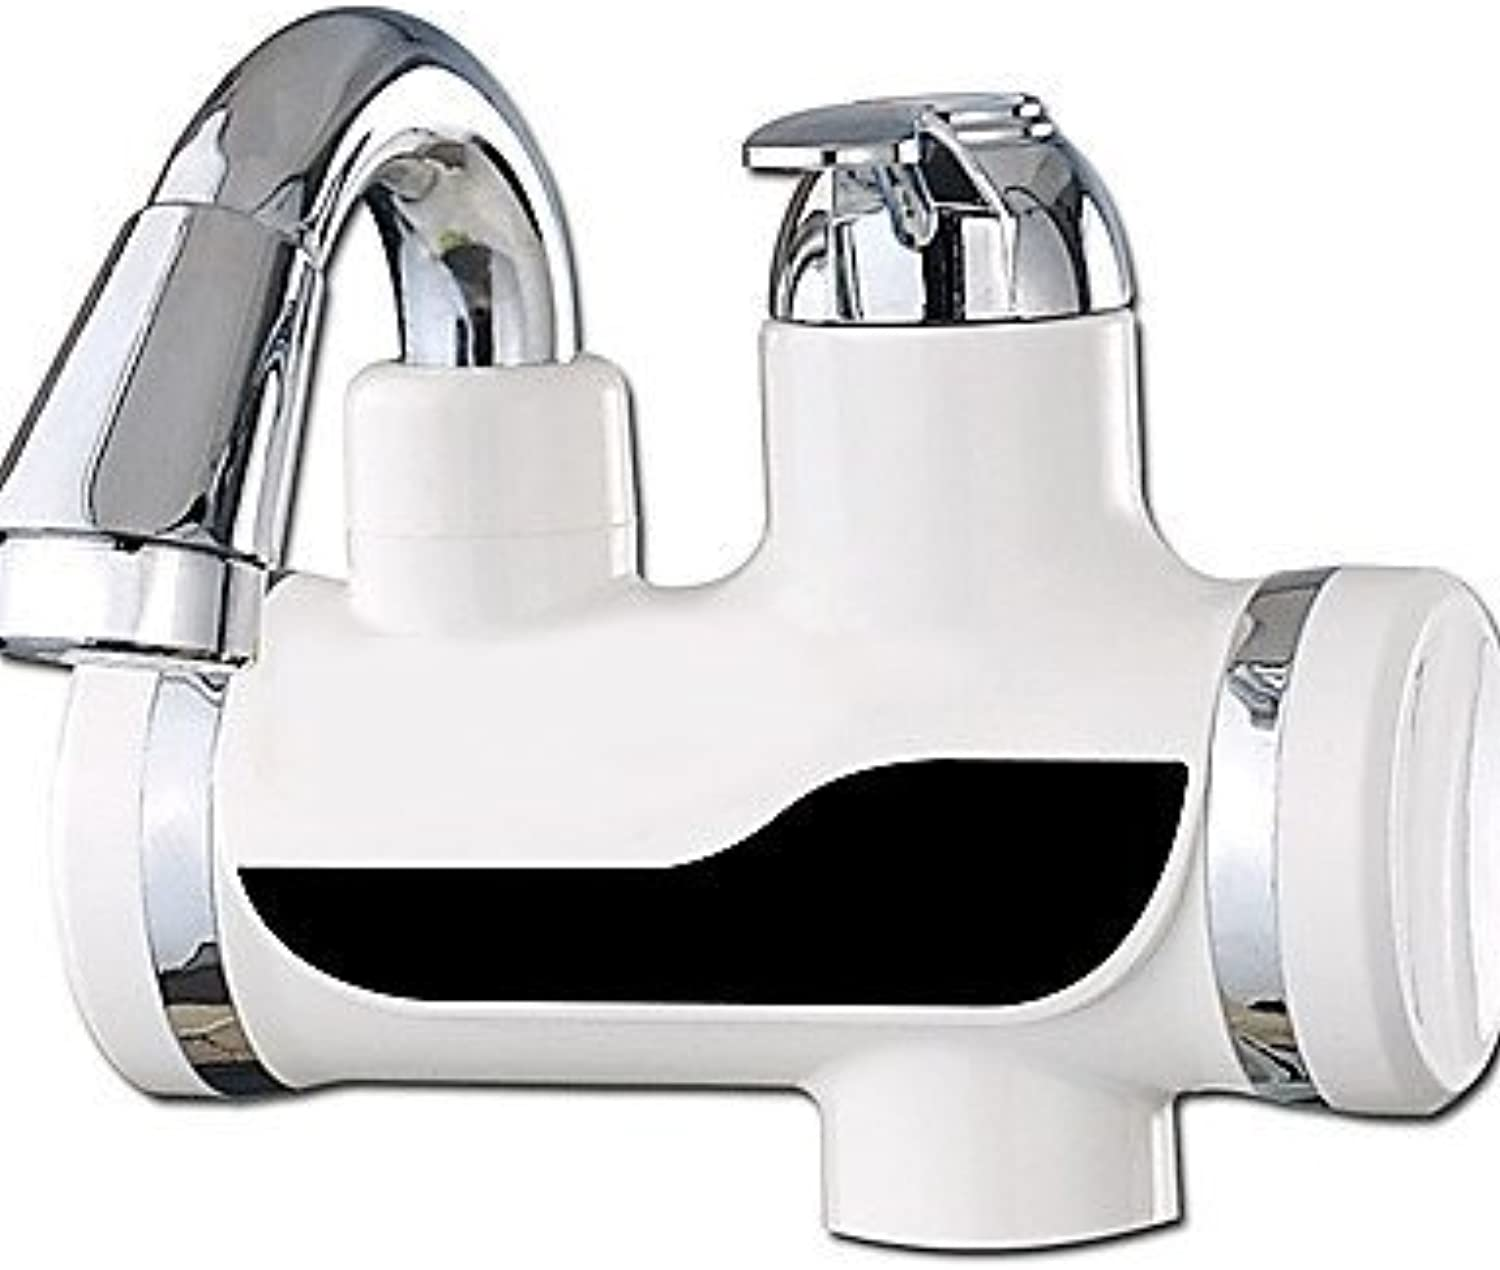 MONFS HOME Digital Electric Water Heaters Faucet kitchen Cold hot dual-purpose Leakage predection